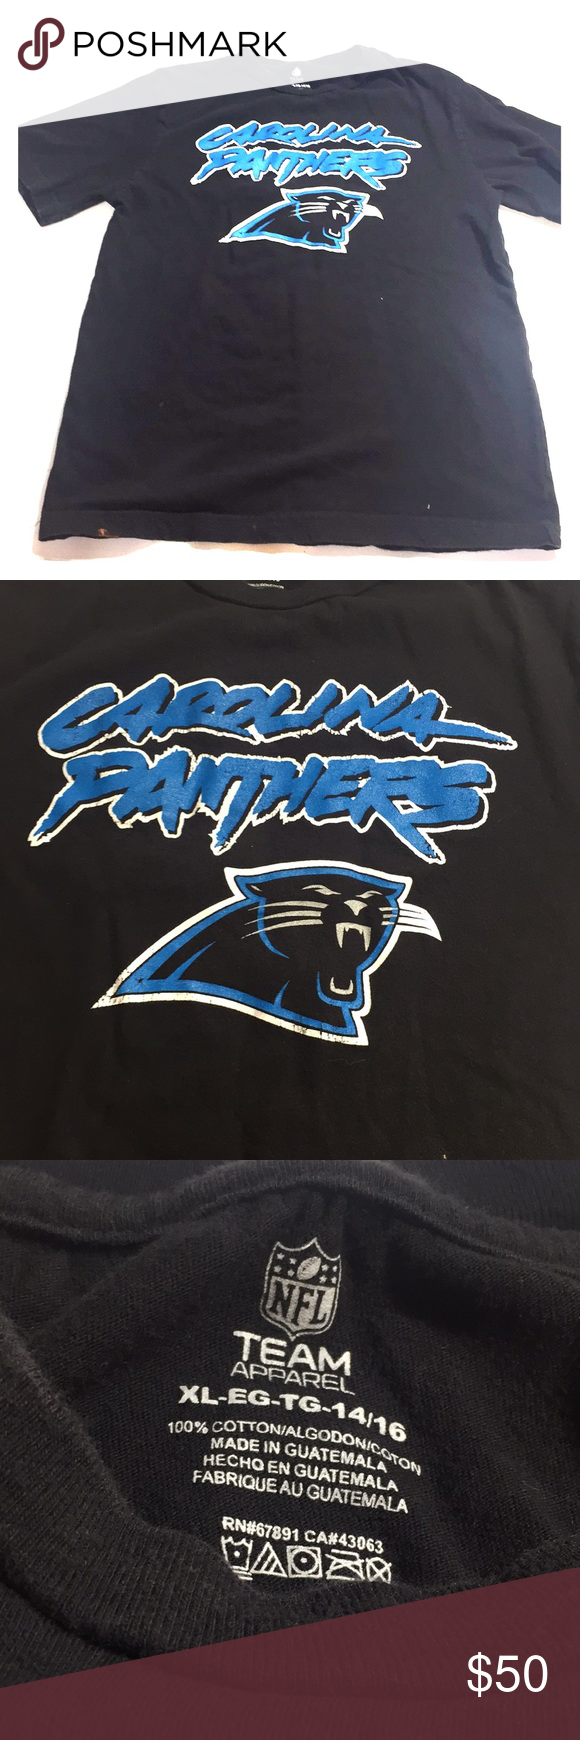 NFL Carolina panthers t-shirt size boys XL 14 16 Brand- NFL Size- Boys 14 16  XL Condition- Good Details- has bleach stains on front (view pics) Please  ... 1224012f8